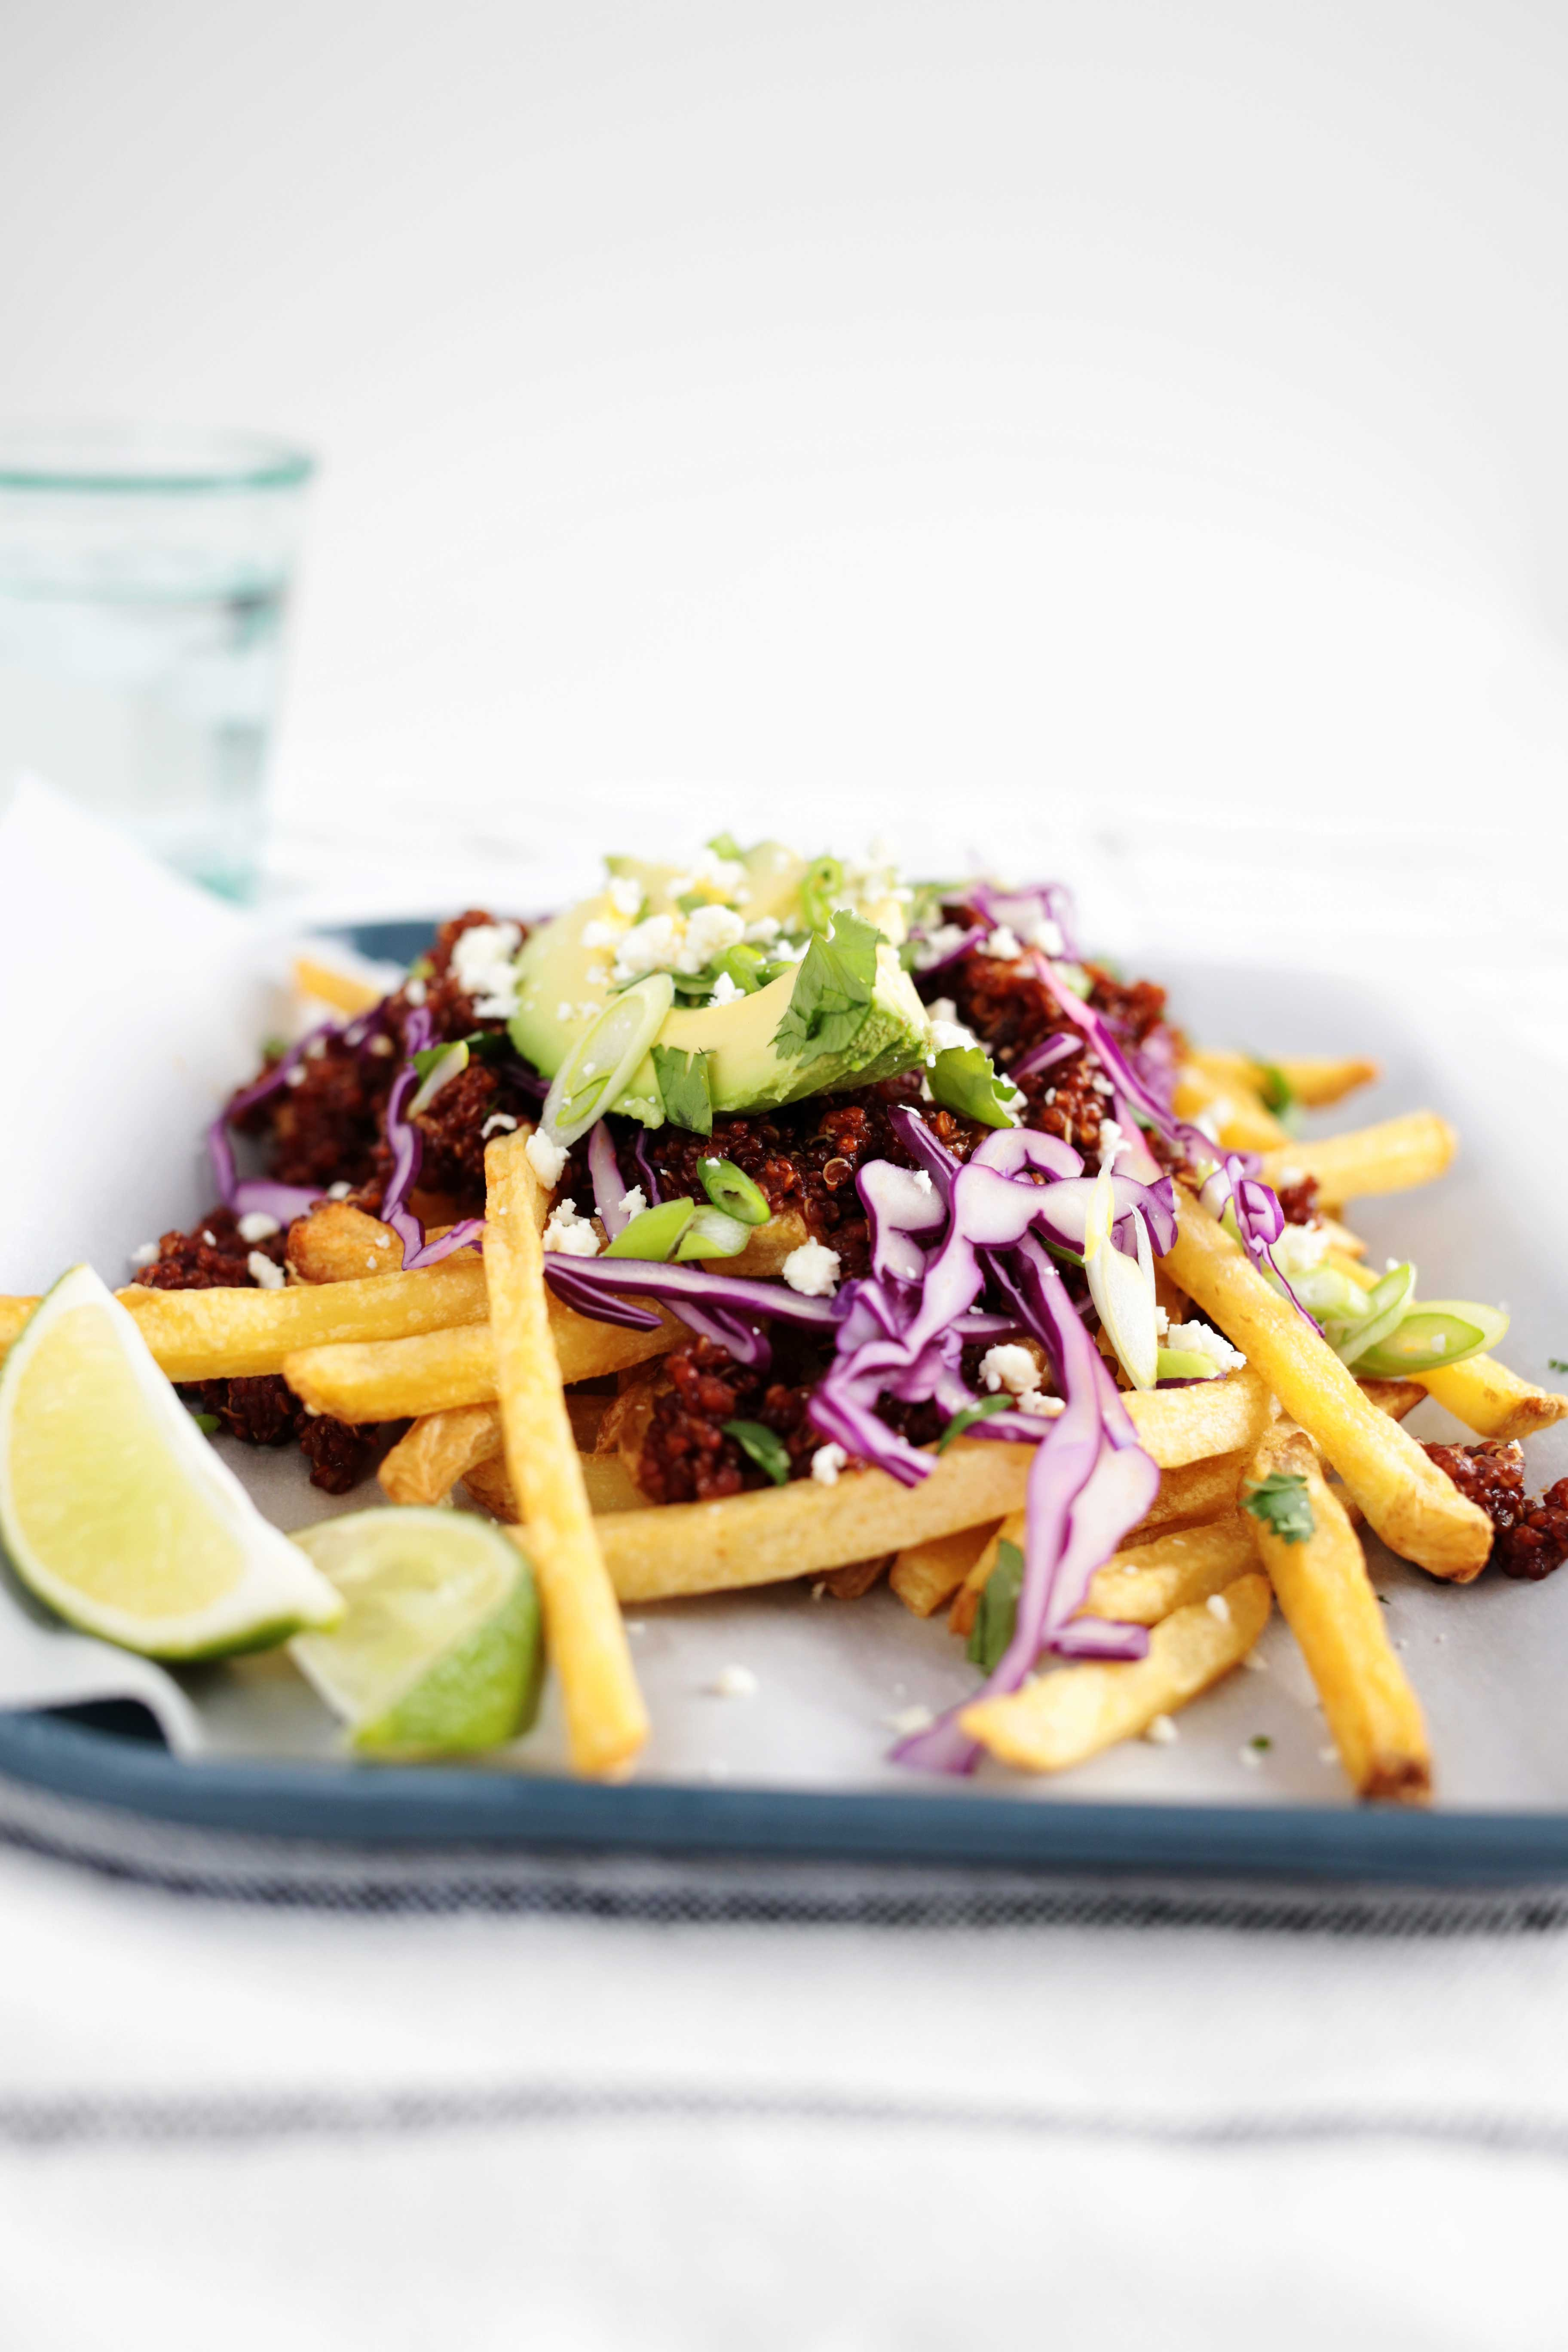 Vegetarian Chili Cheese Fries from The Fauxmartha